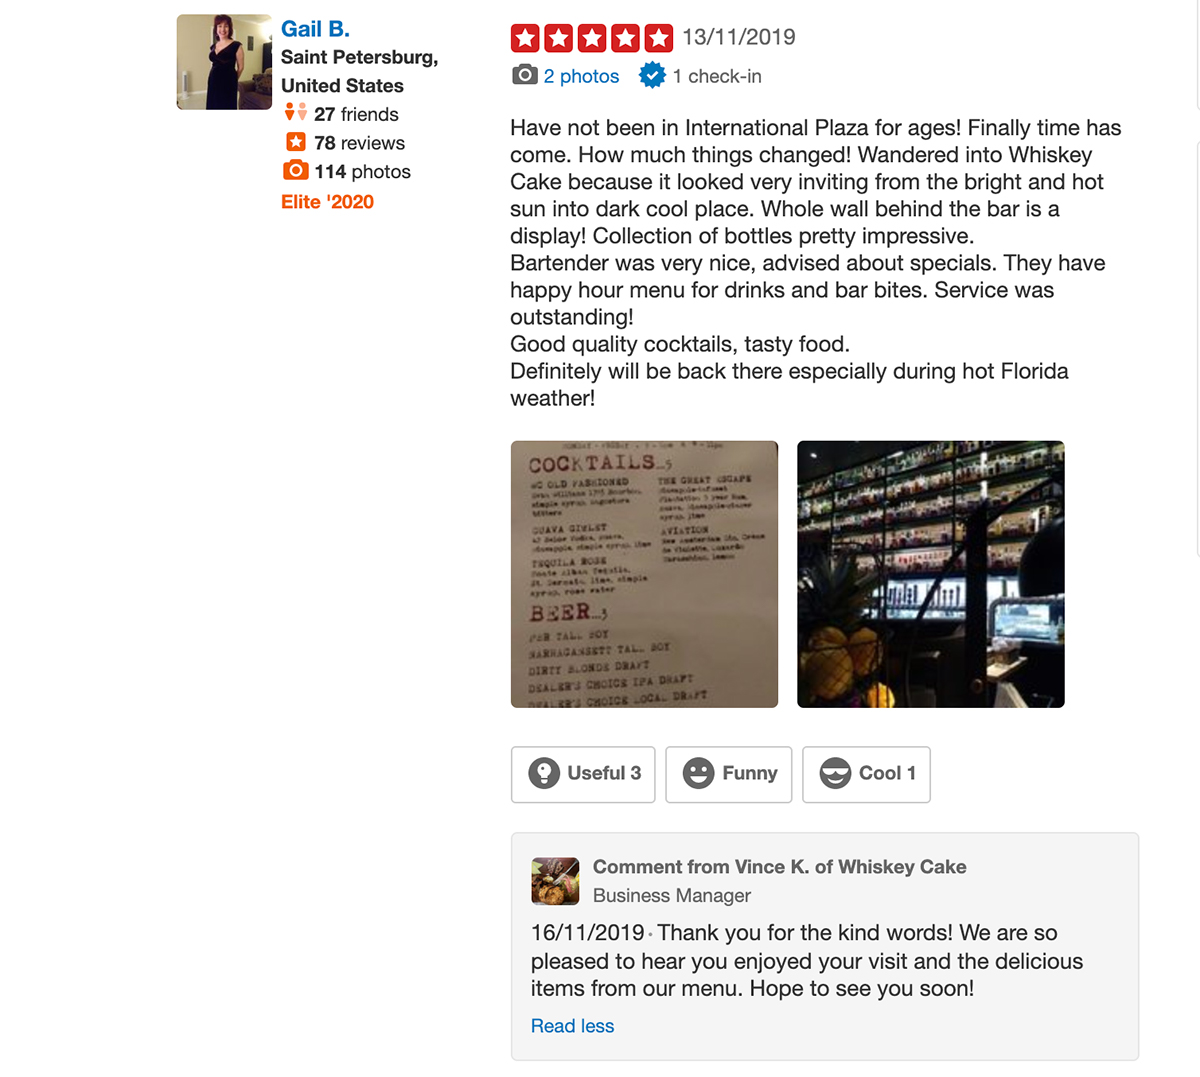 5 star review with an invitation